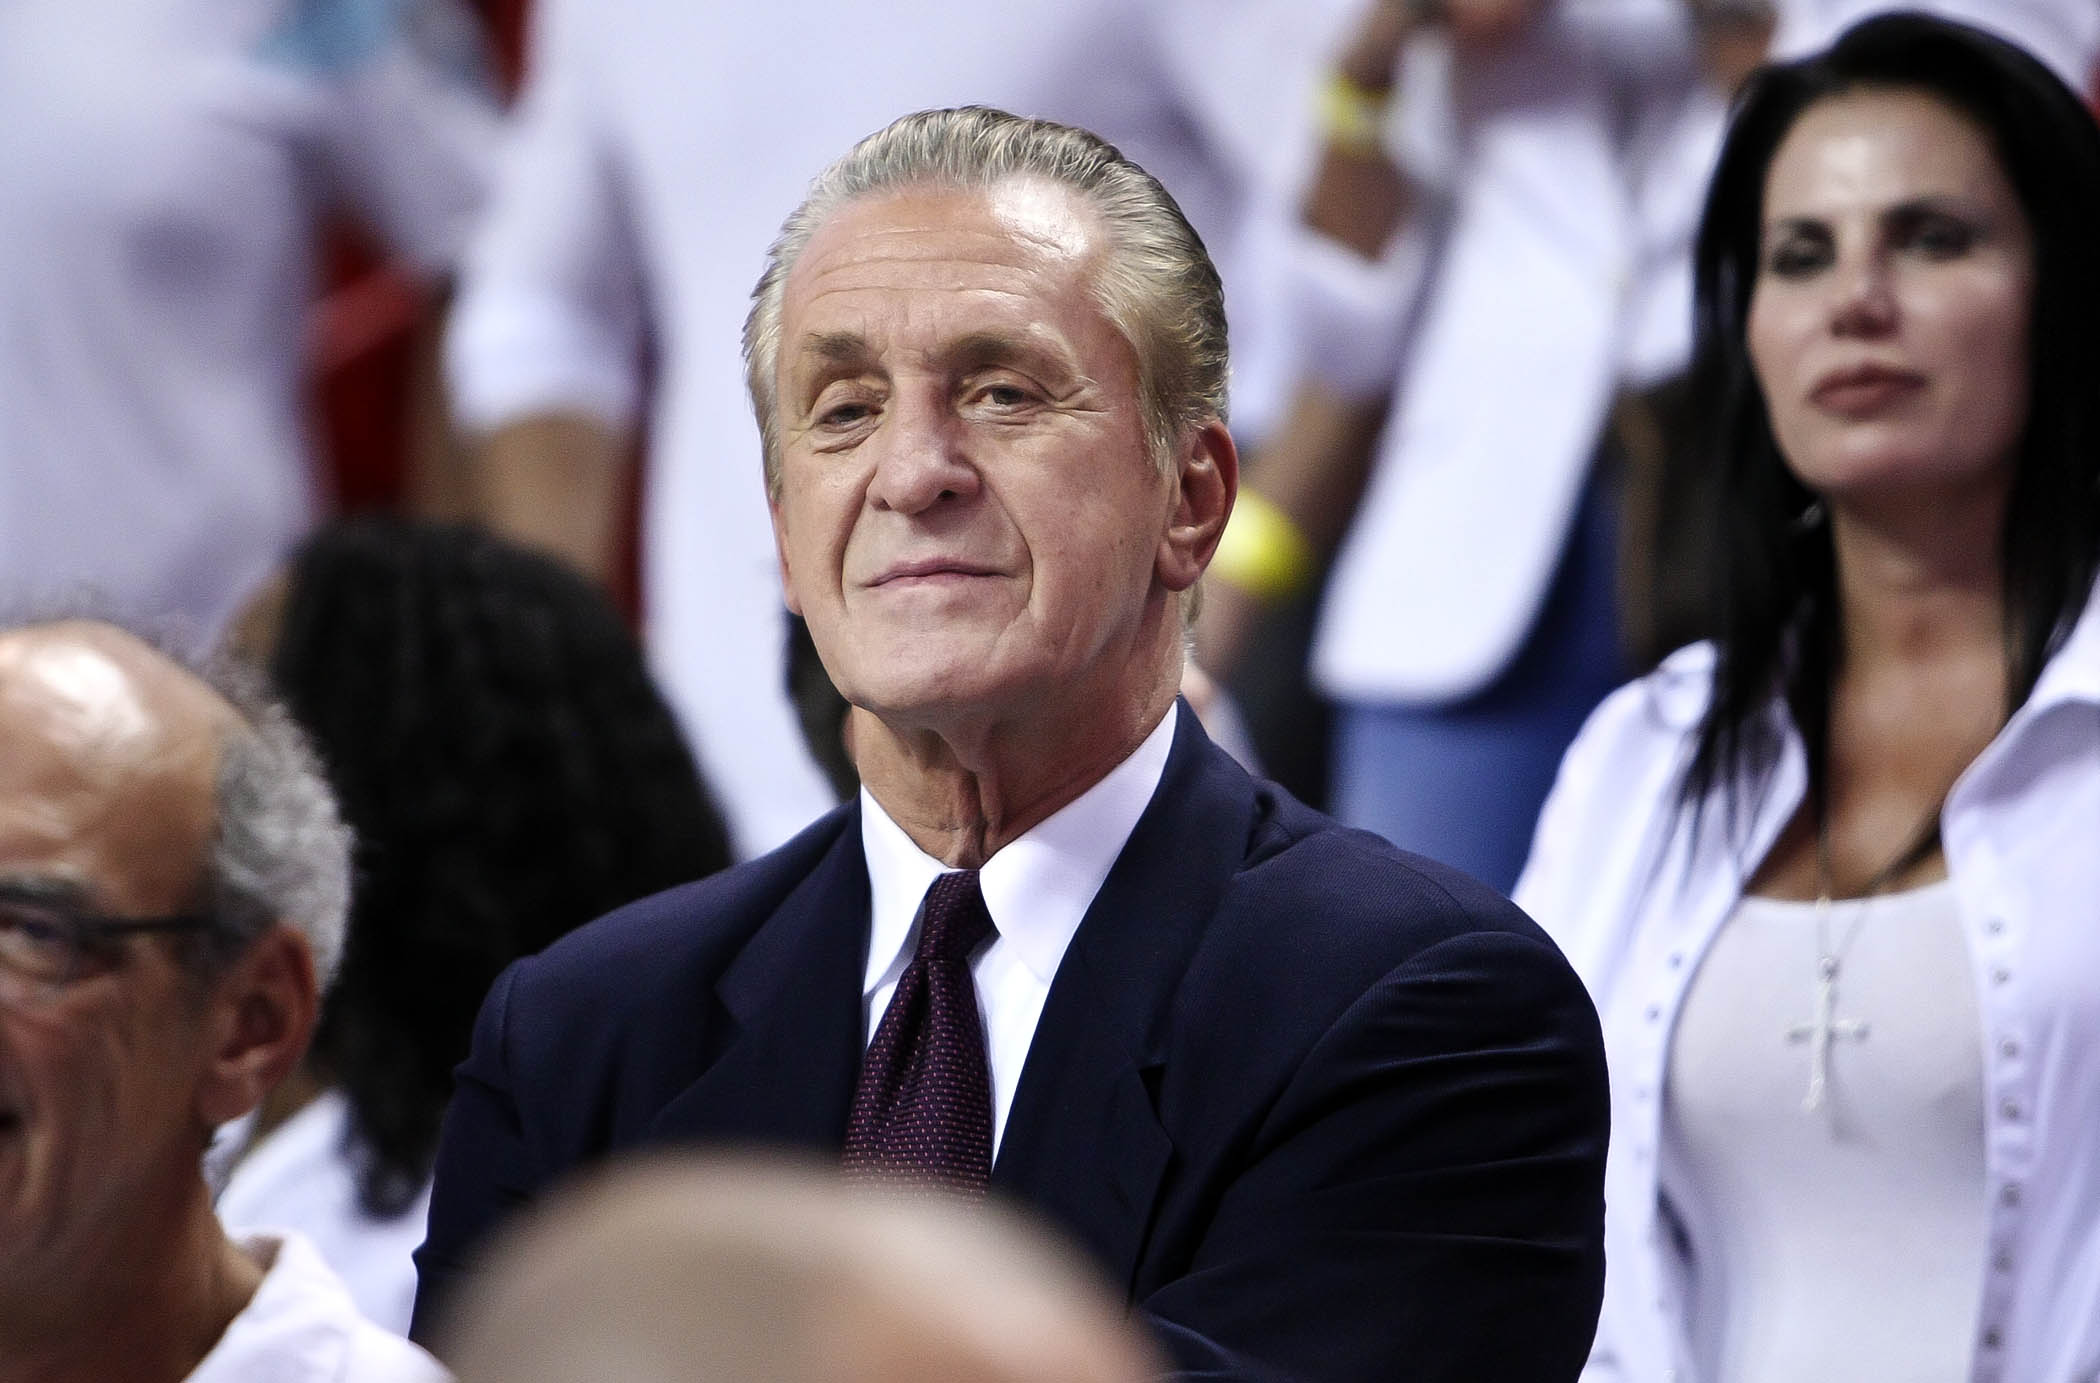 Miami Heat President Pat Riley watching from the stands during the trophy ceremonies of the Eastern Conference Final between the Miami Heat and the Indiana Pacers, Monday June 03, 2013, at American Airlines Miami.(Bill Ingram/Palm Beach Post)